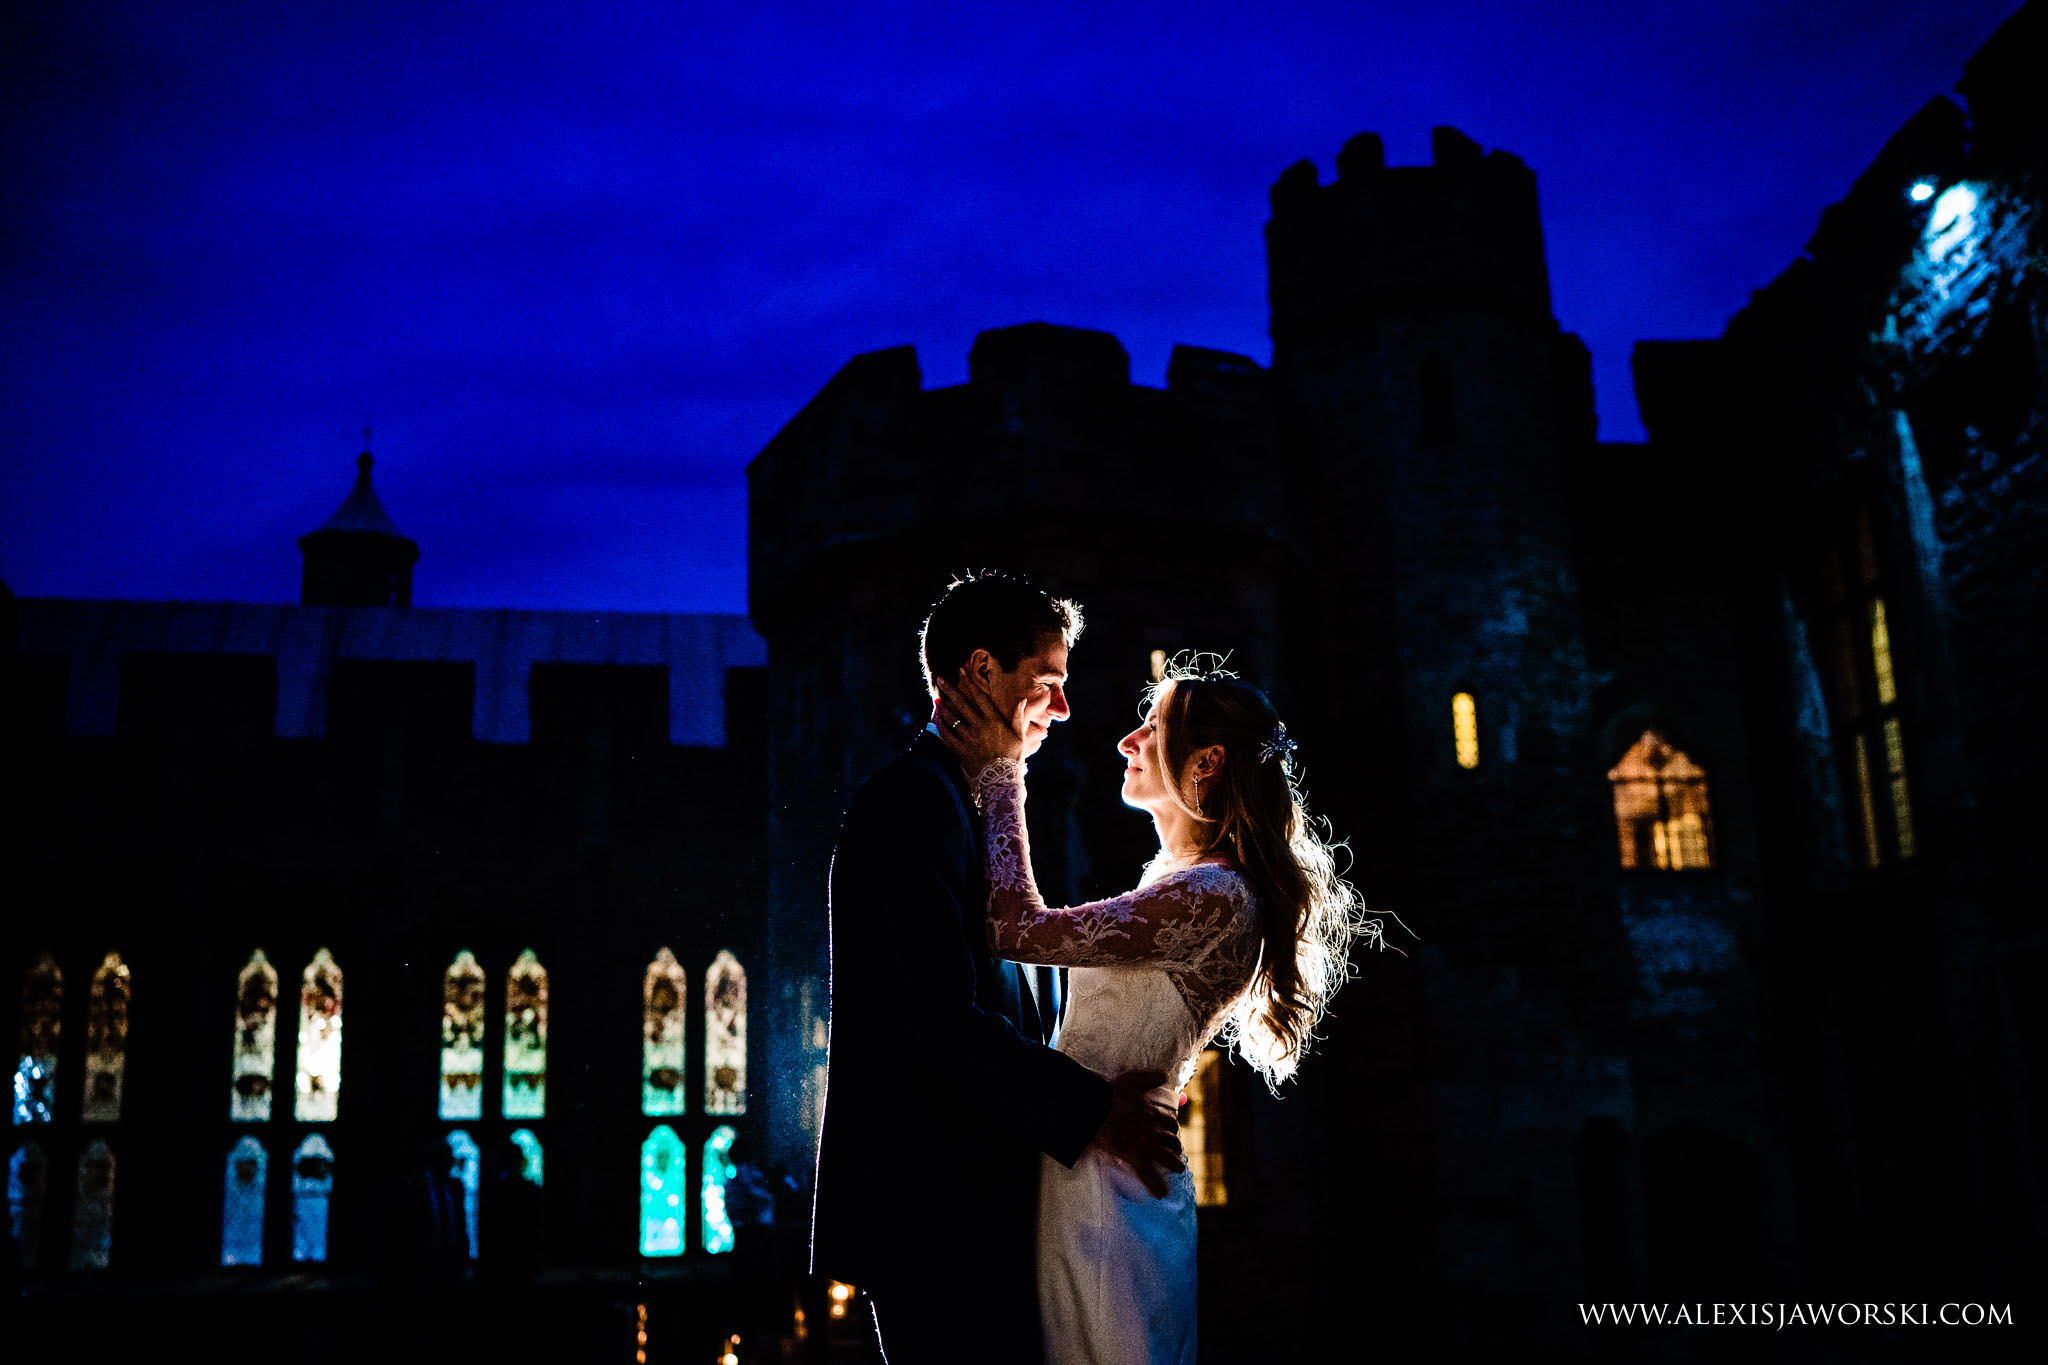 a night portrait of the bride and groom